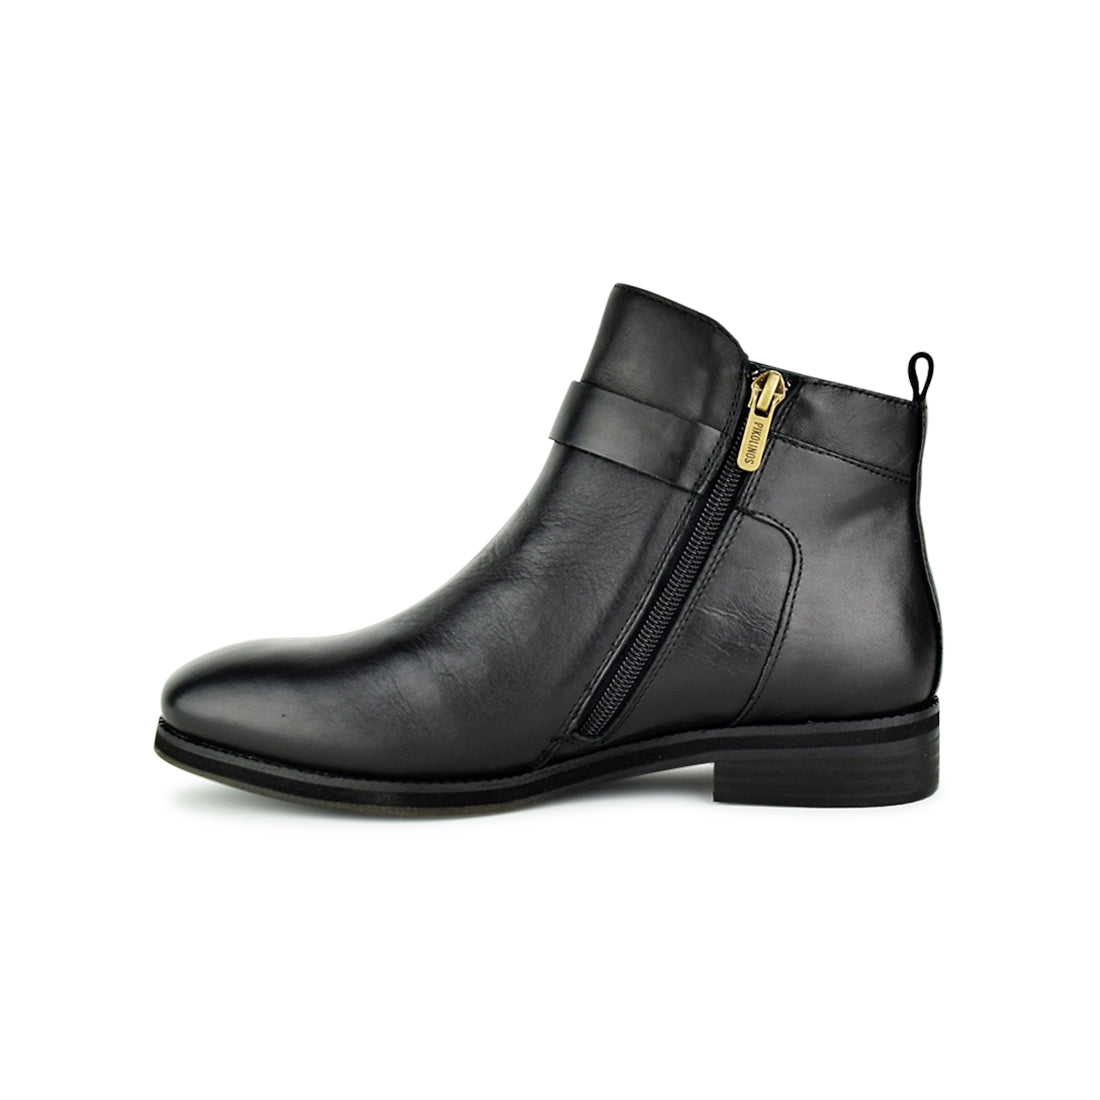 RANDY - Pikolinos Ankle Boots Black